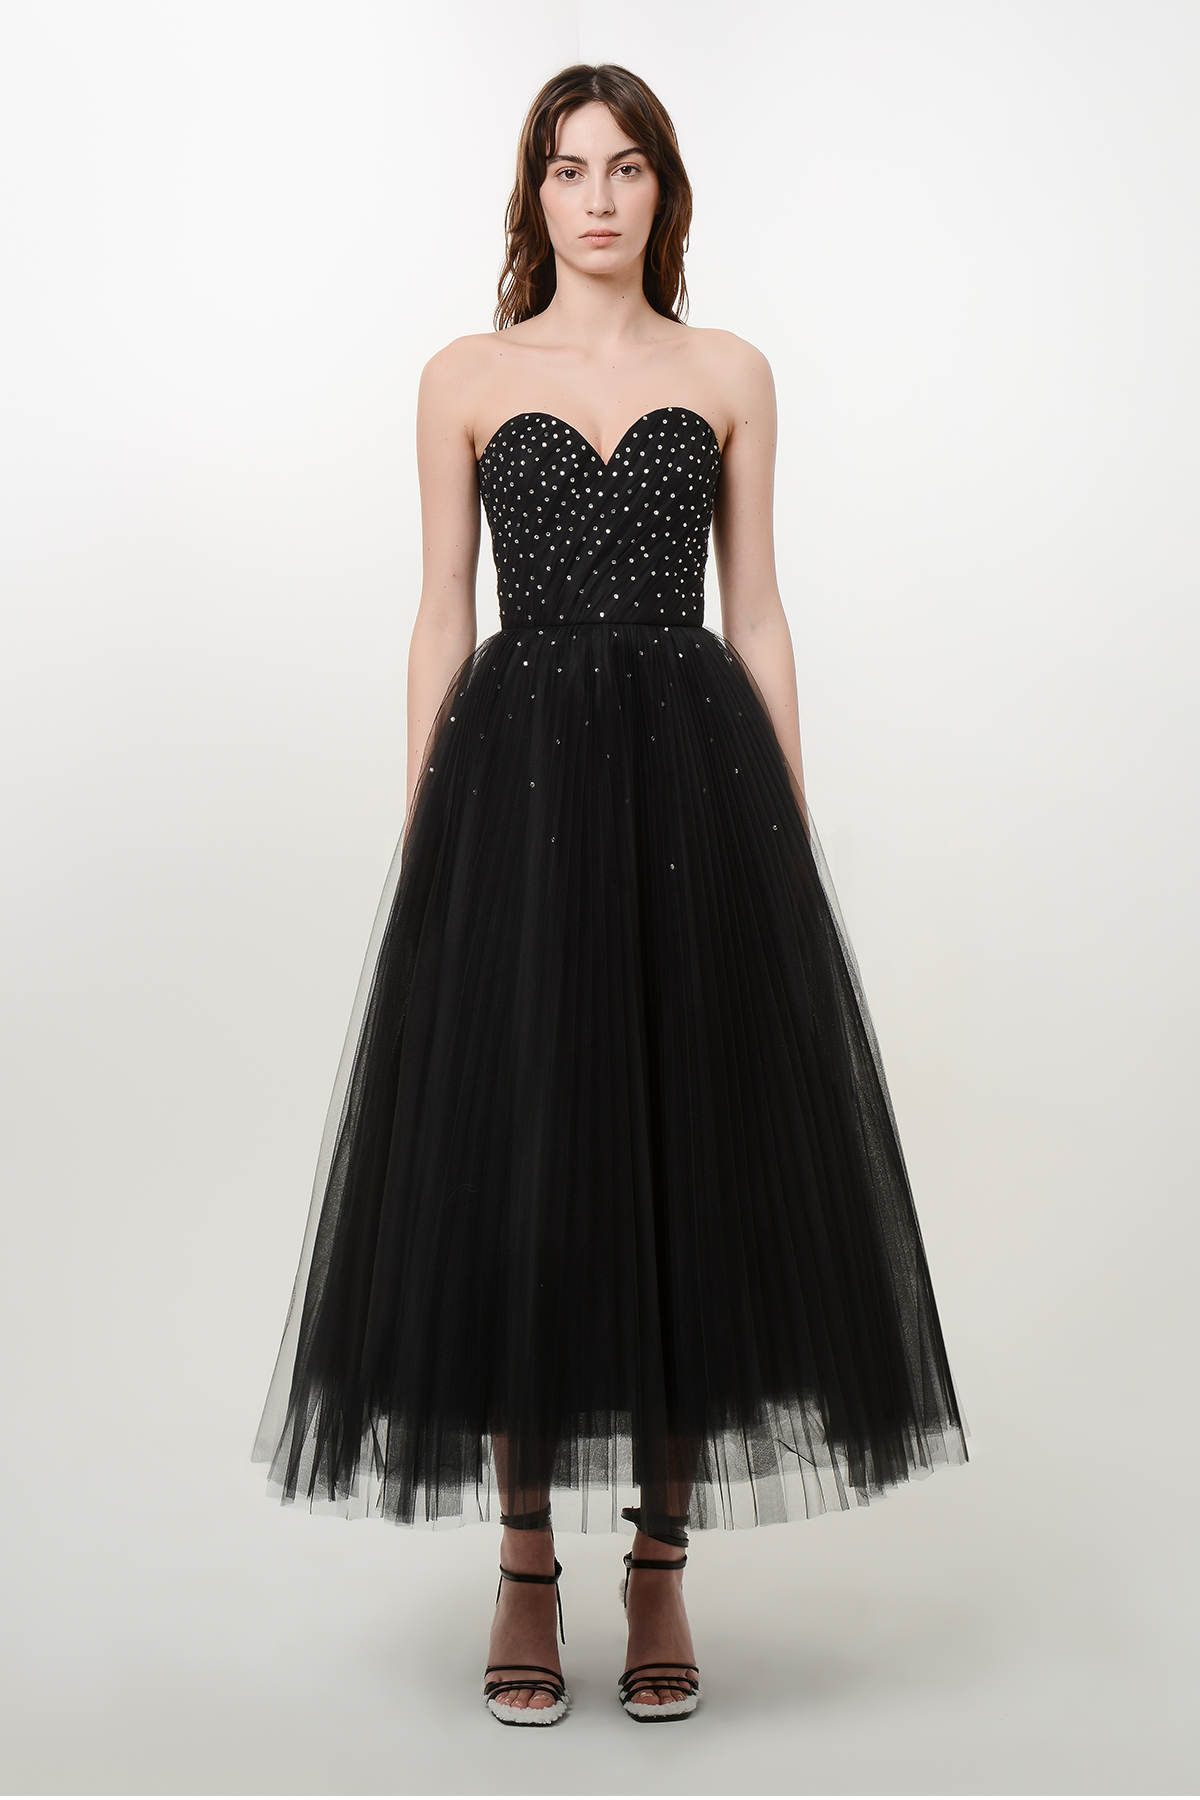 Corset style tulle dress with crystals